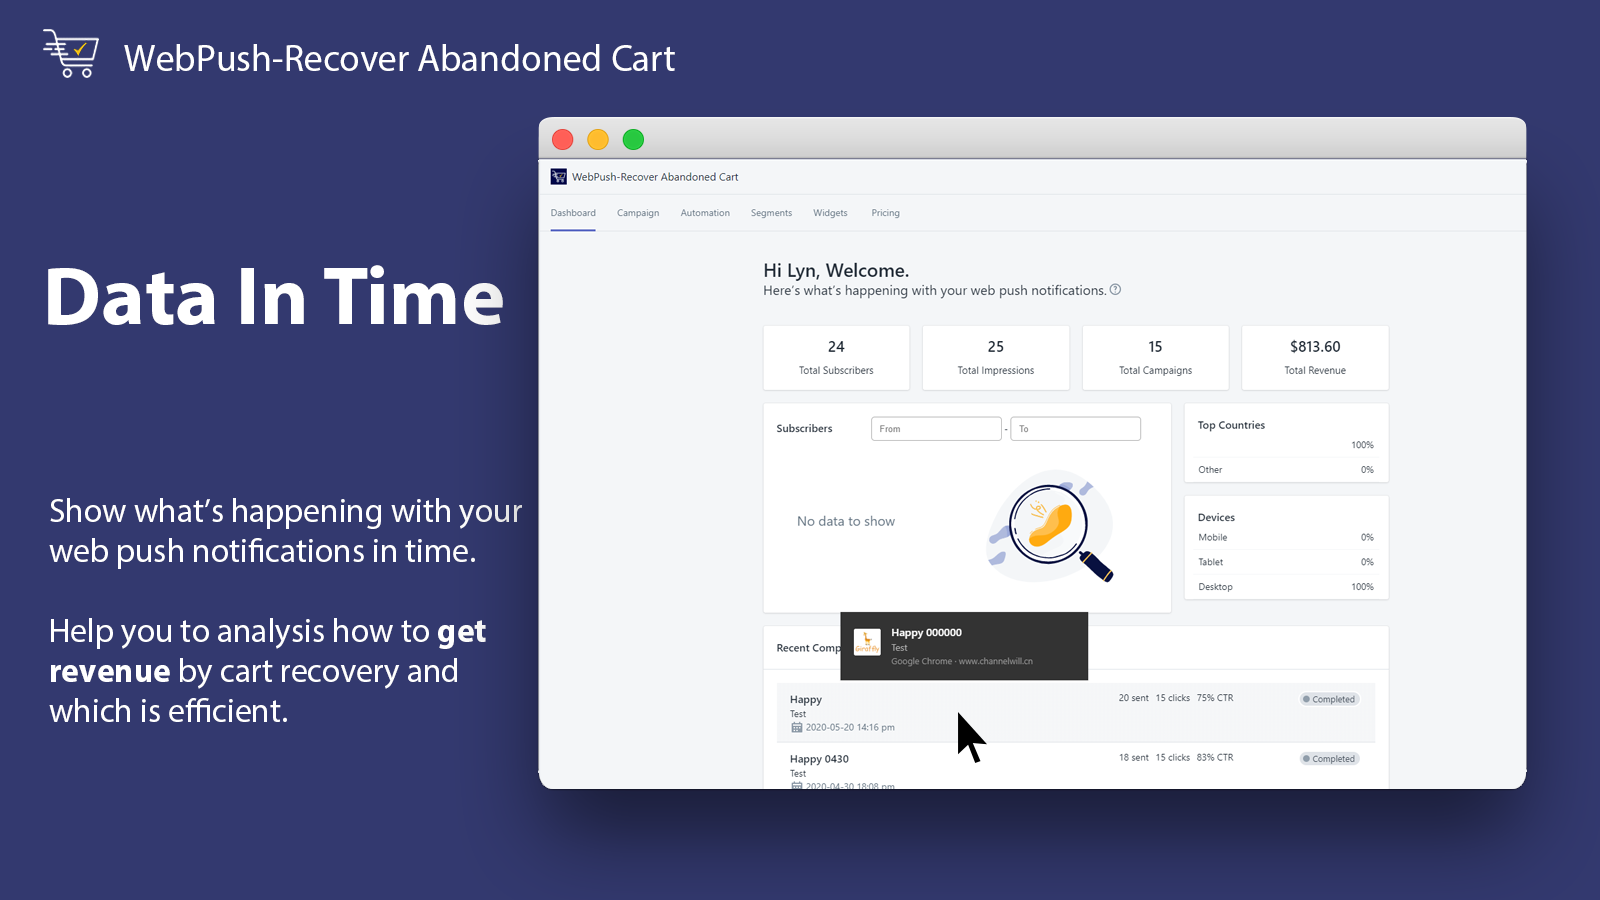 Data In Time_WebPush-Recover Abandoned Cart